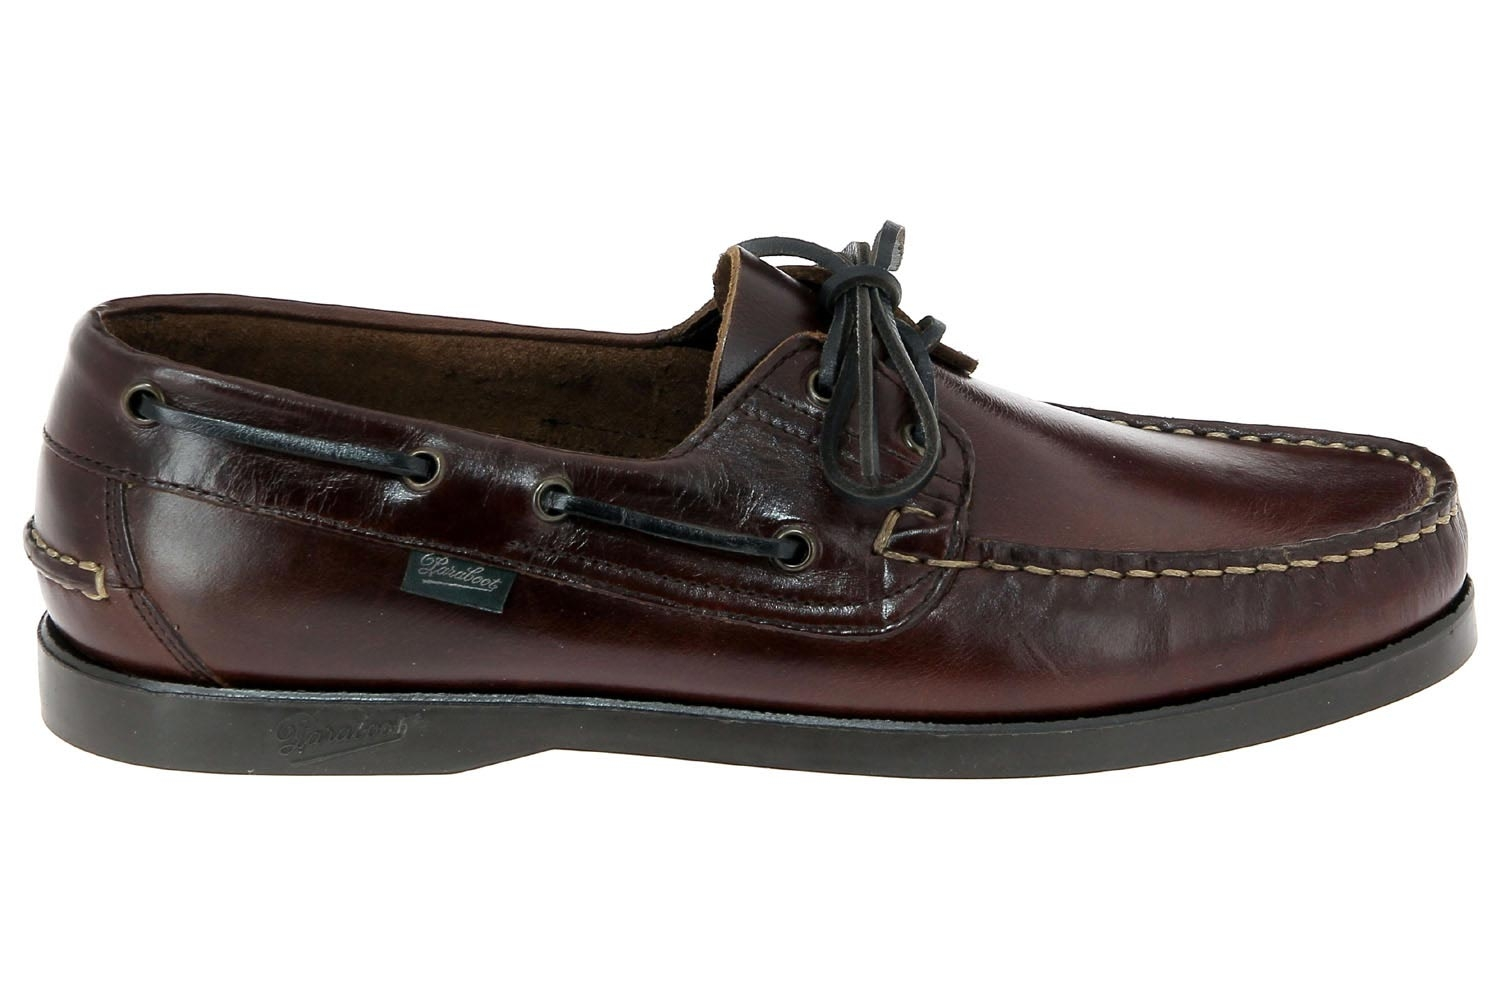 Chaussures bateaux paraboot marron barth america chaussures homme paraboot f56400972ac2